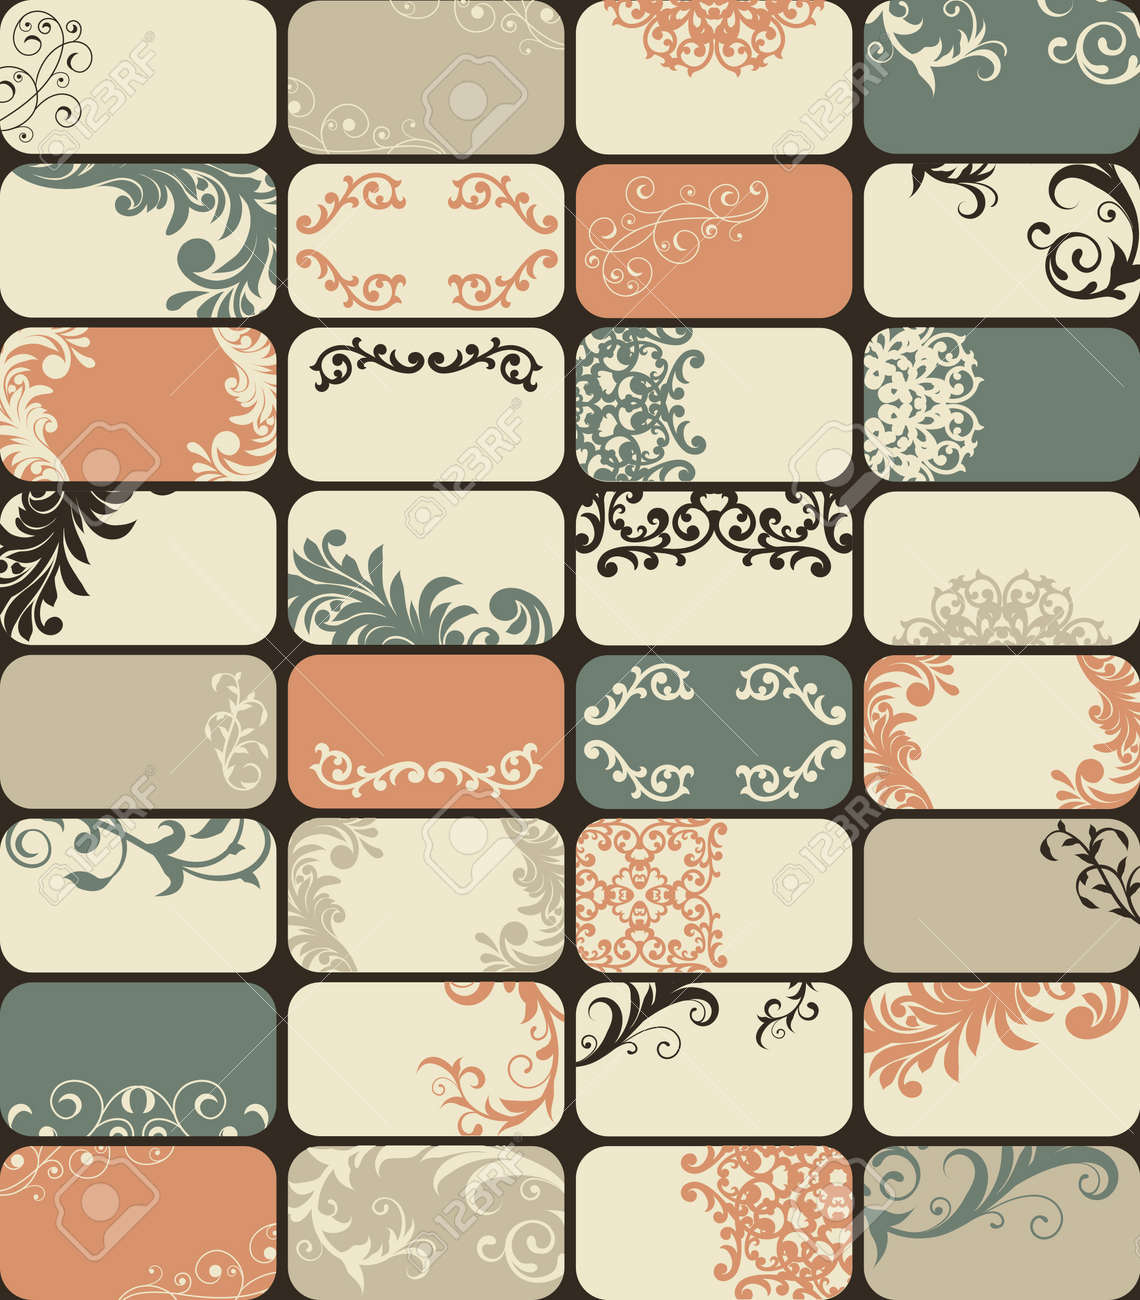 32 Retro Style Business Cards With Unique Floral Patterns Royalty ...